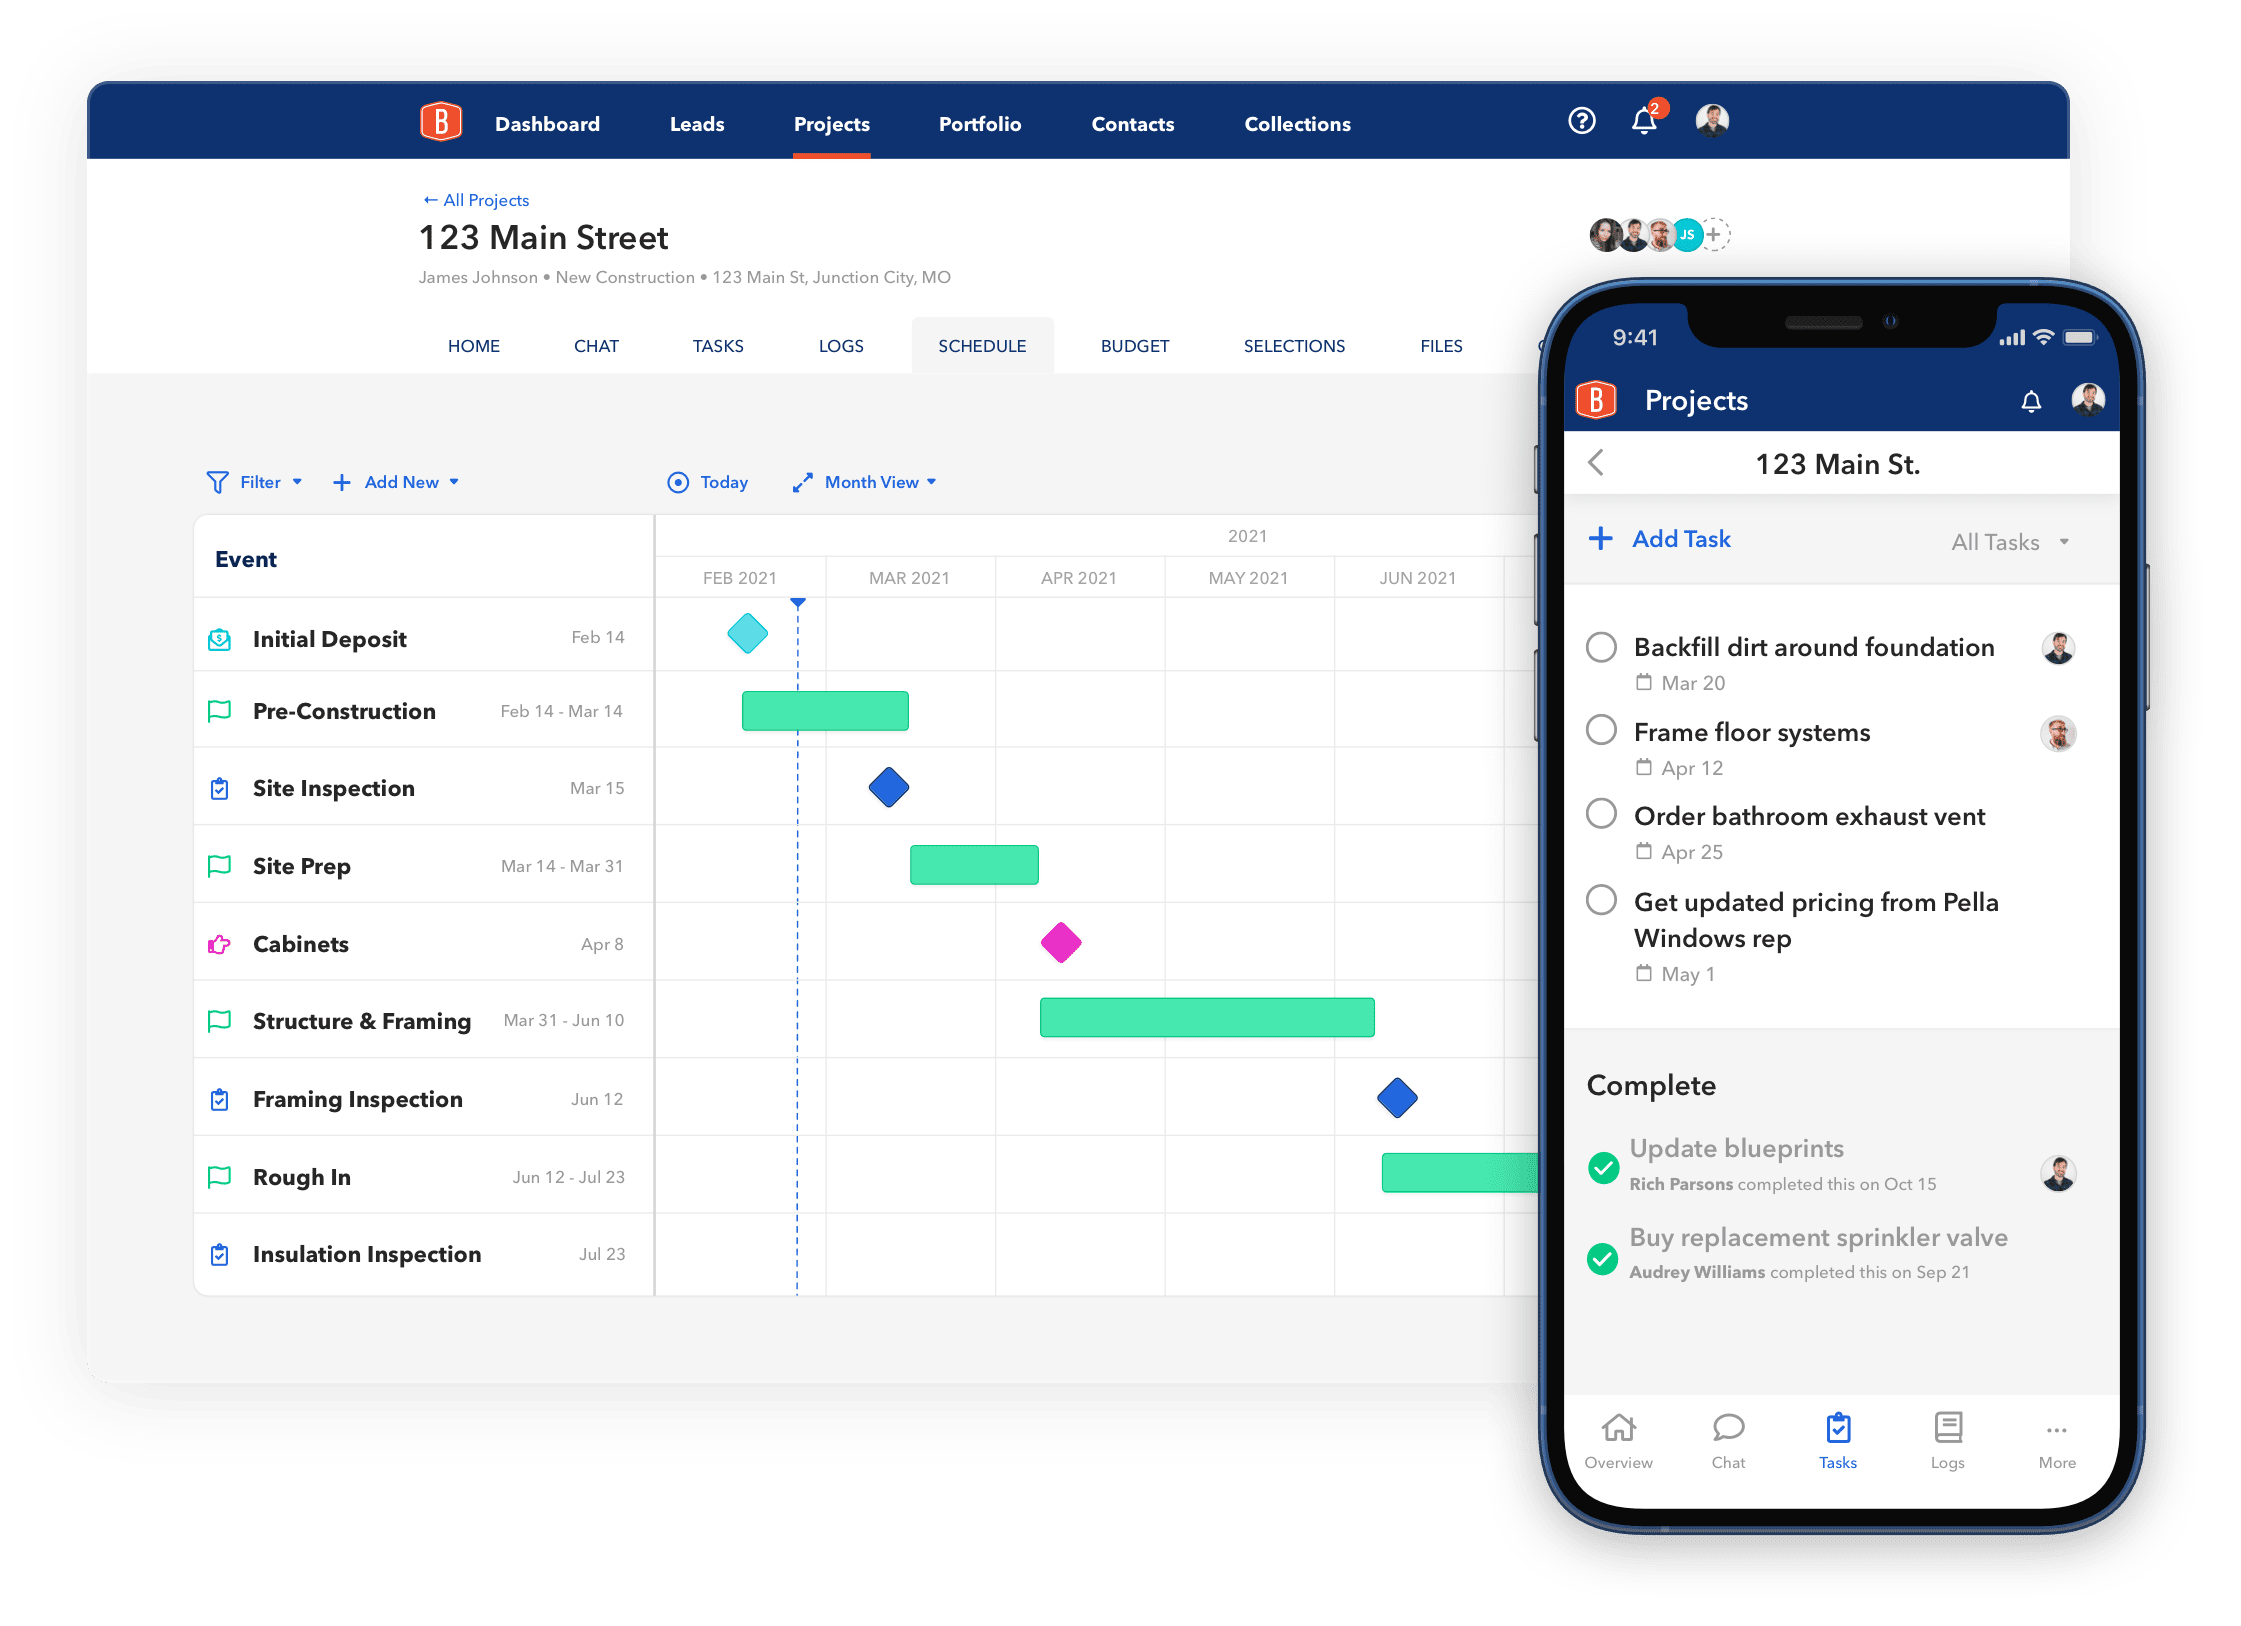 BuildBook Launches an All-New Project Management Suite Aimed at Disrupting the Status Quo of Construction Software